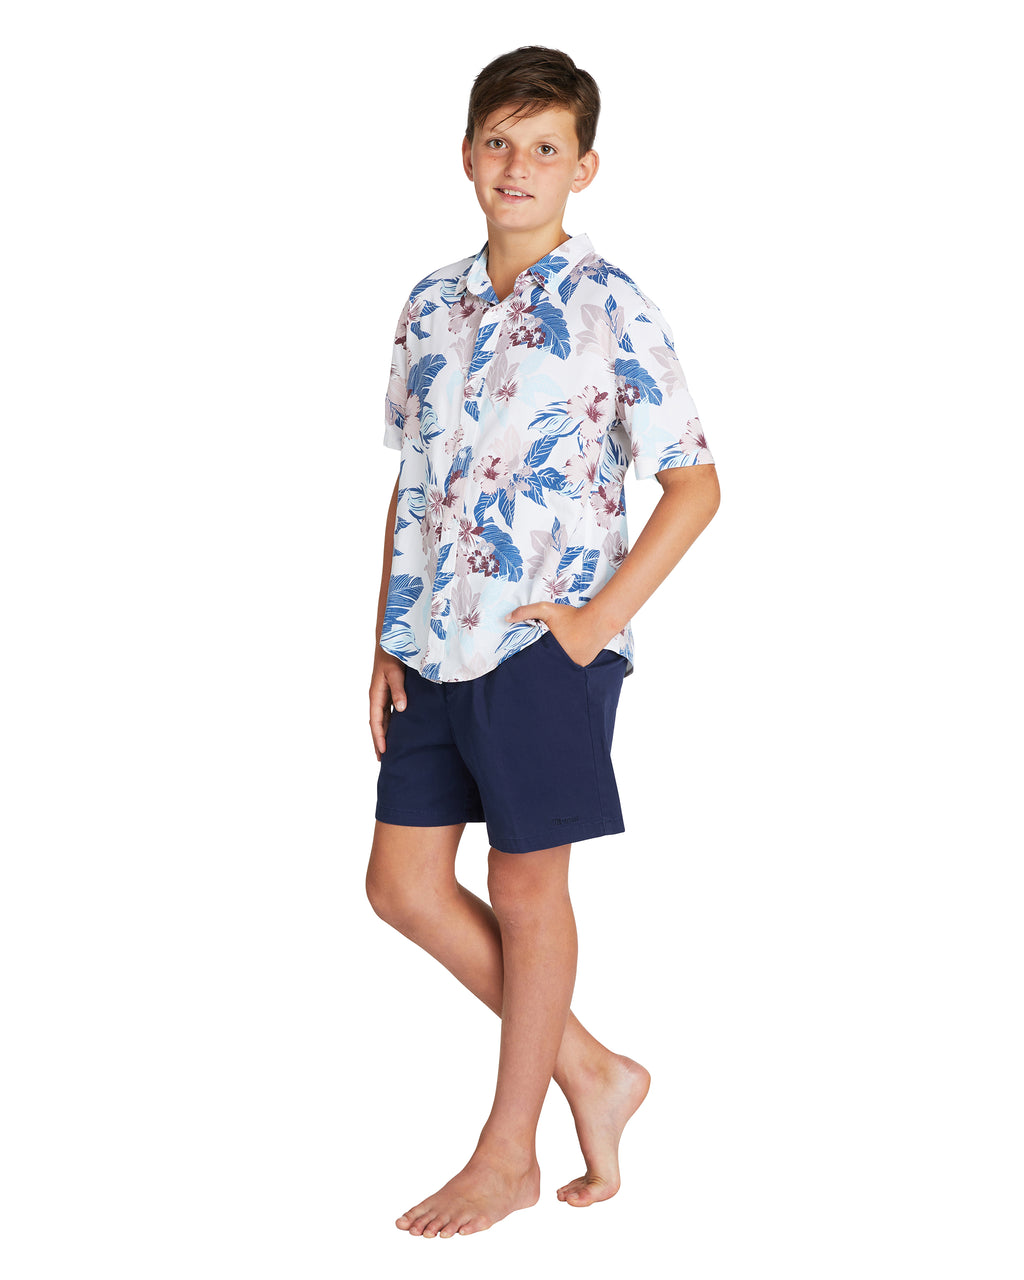 Kids S/S Shirt - Farrelly - Natural - 100% Rayon